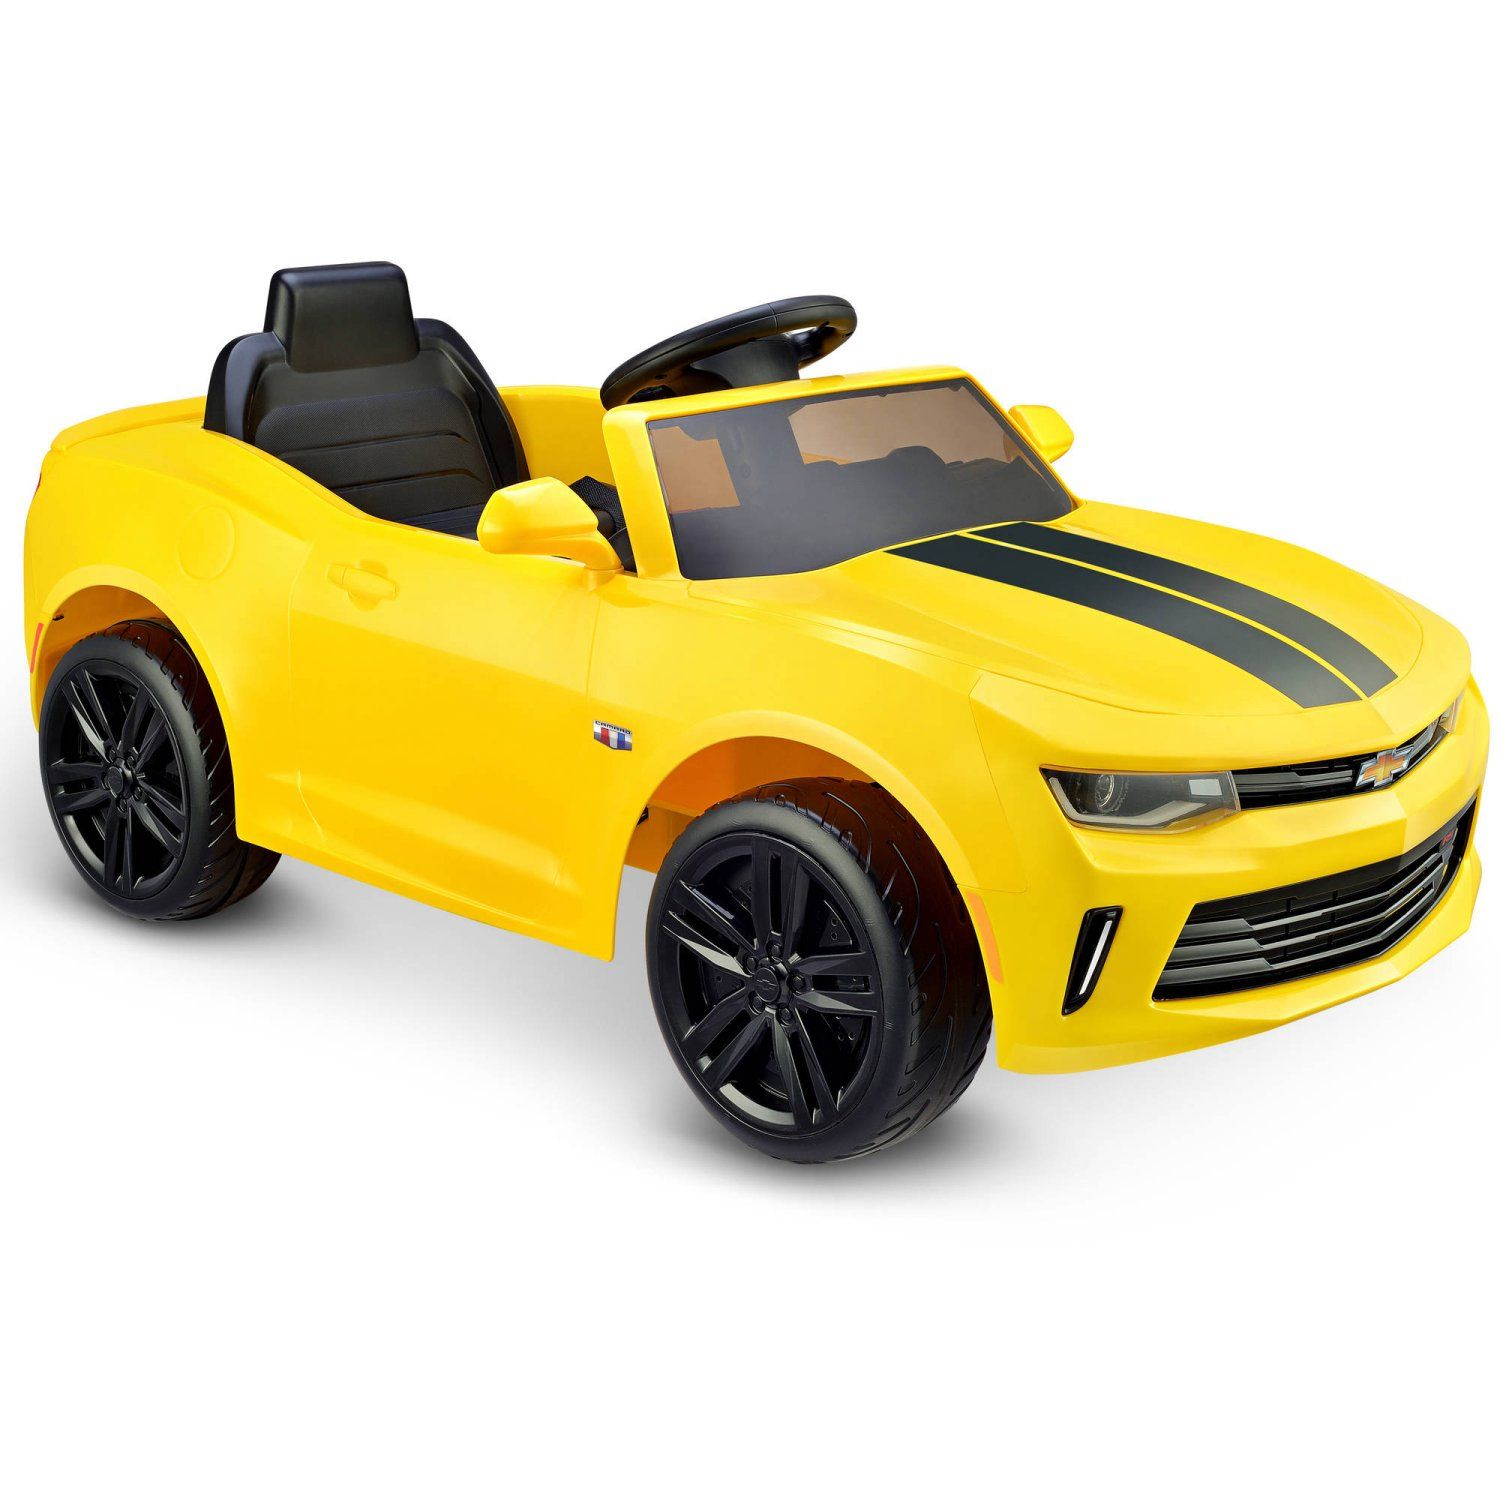 Kids Ride On Electric Cars Beautiful Official Bumblebee Camaro Rs Ride On toy Electric Car Kids Yellow 6v